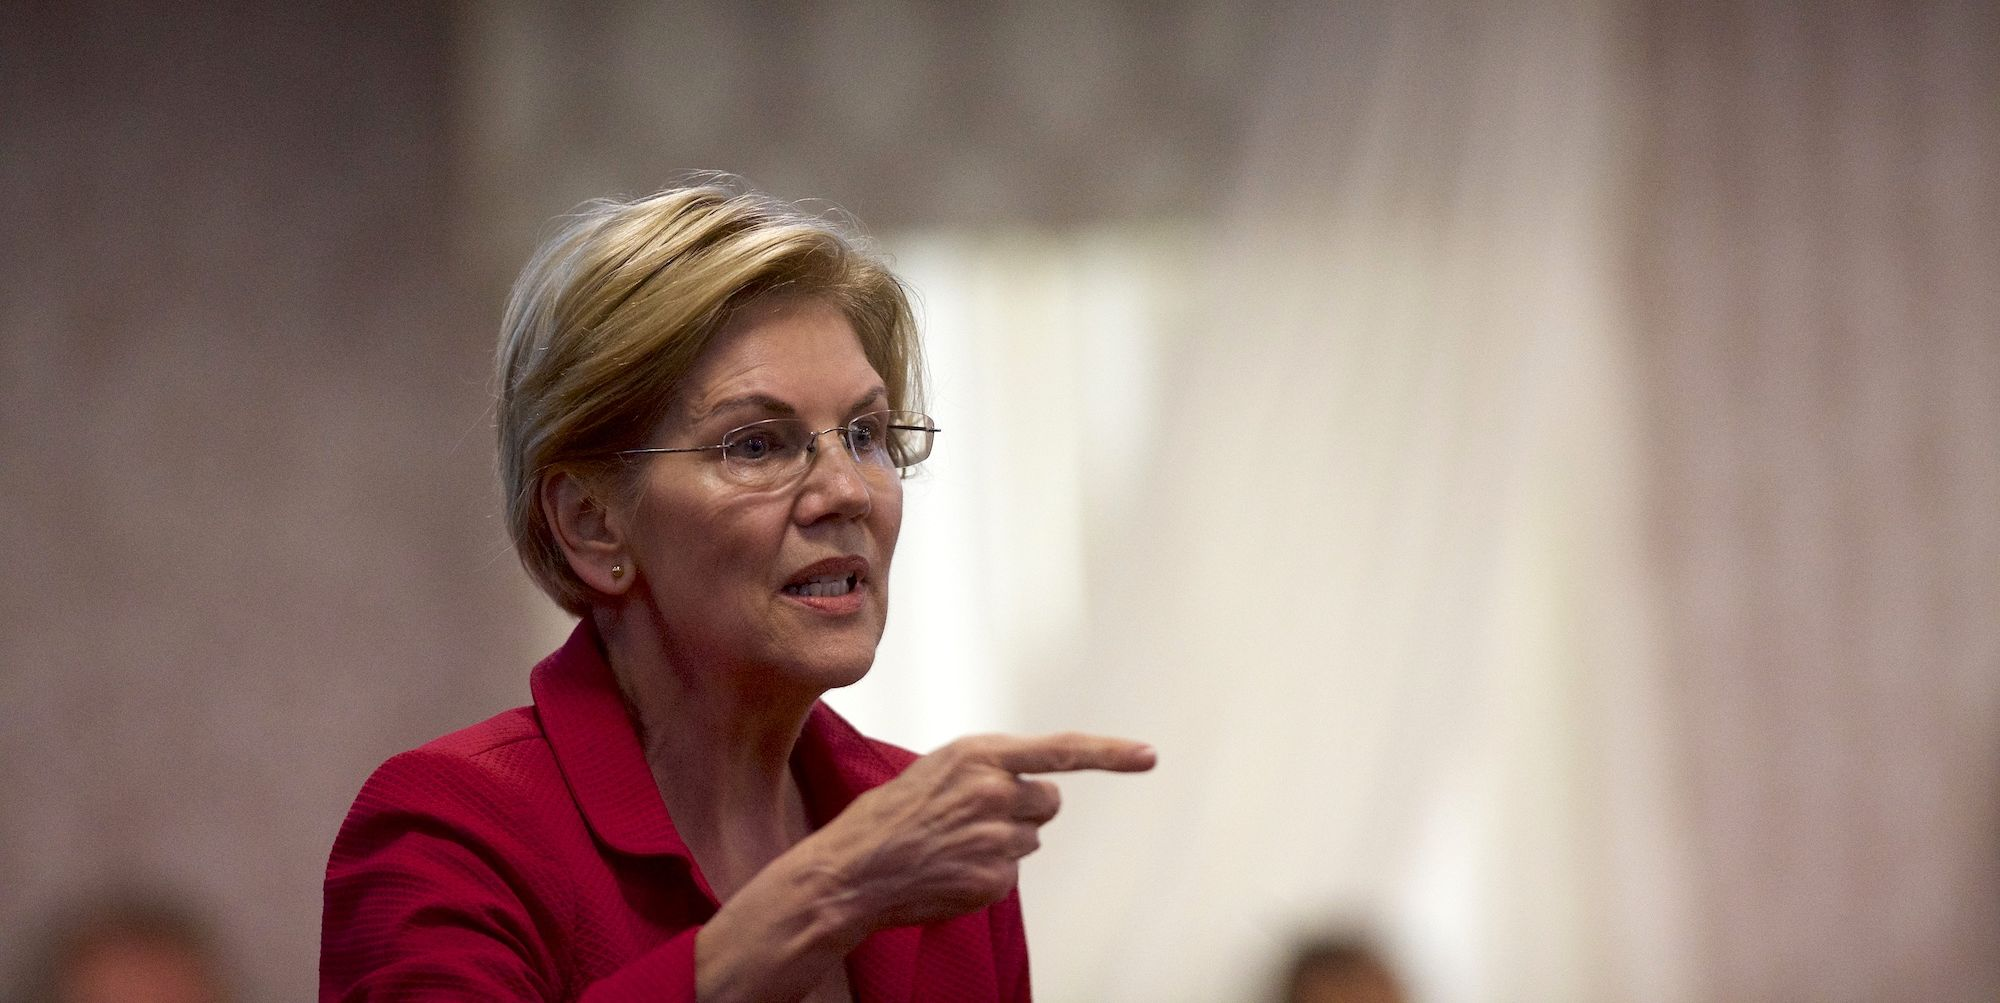 Democratic Presidential Candidate Elizabeth Warren Holds A Teacher's Union Town Hall in Philadelphia